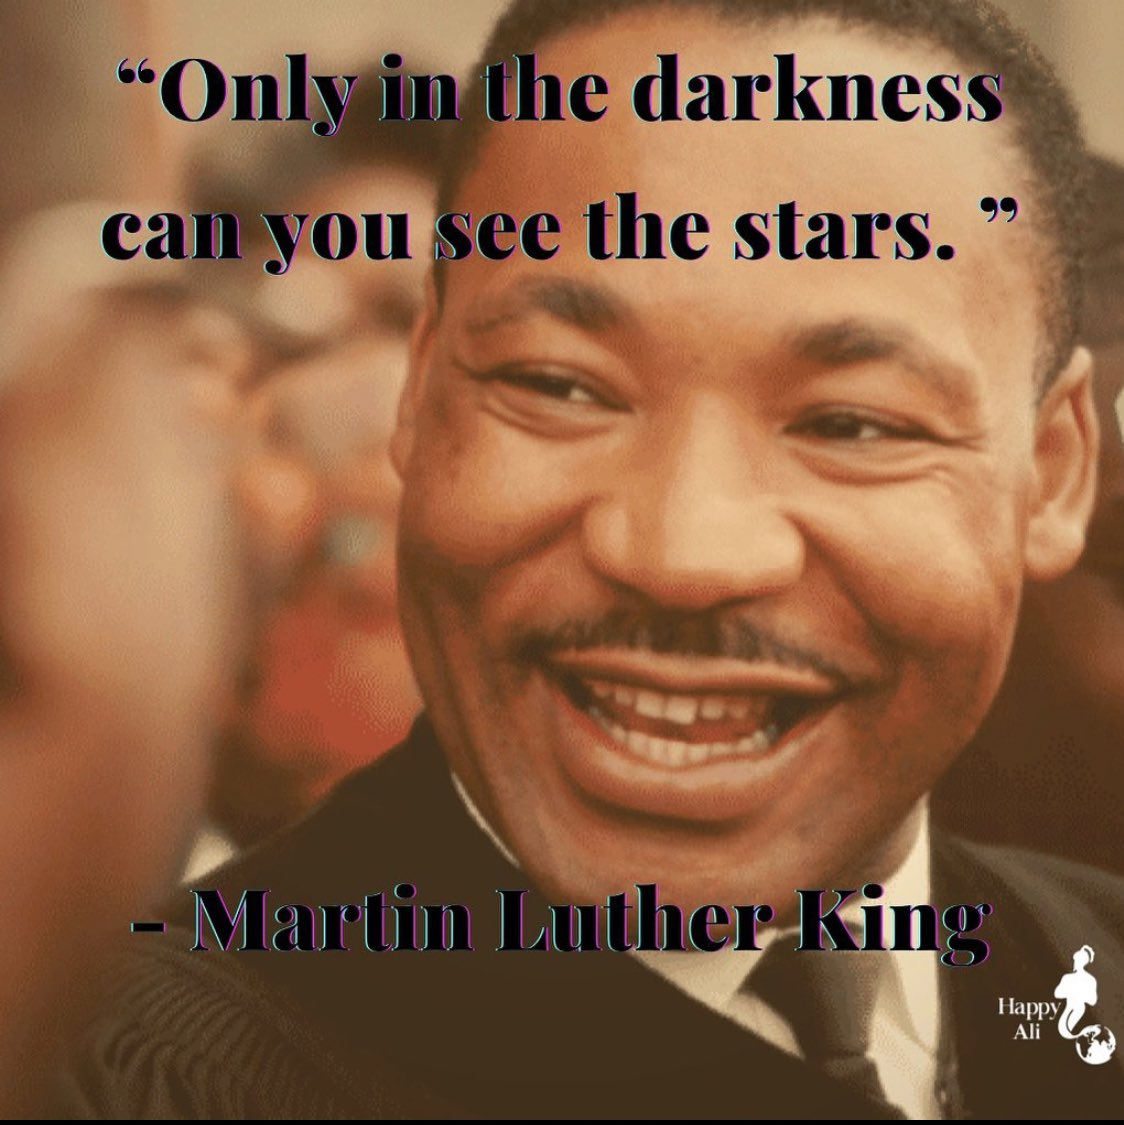 """""""Only in the darkness can you see the stars."""" MLK Jr.  #mkl #martinlutherking #martinluther #happybirthday #birthday #memory #blm #blacklives #blackrights #humanrights #usa #us #blackleader #leader #equalrights"""